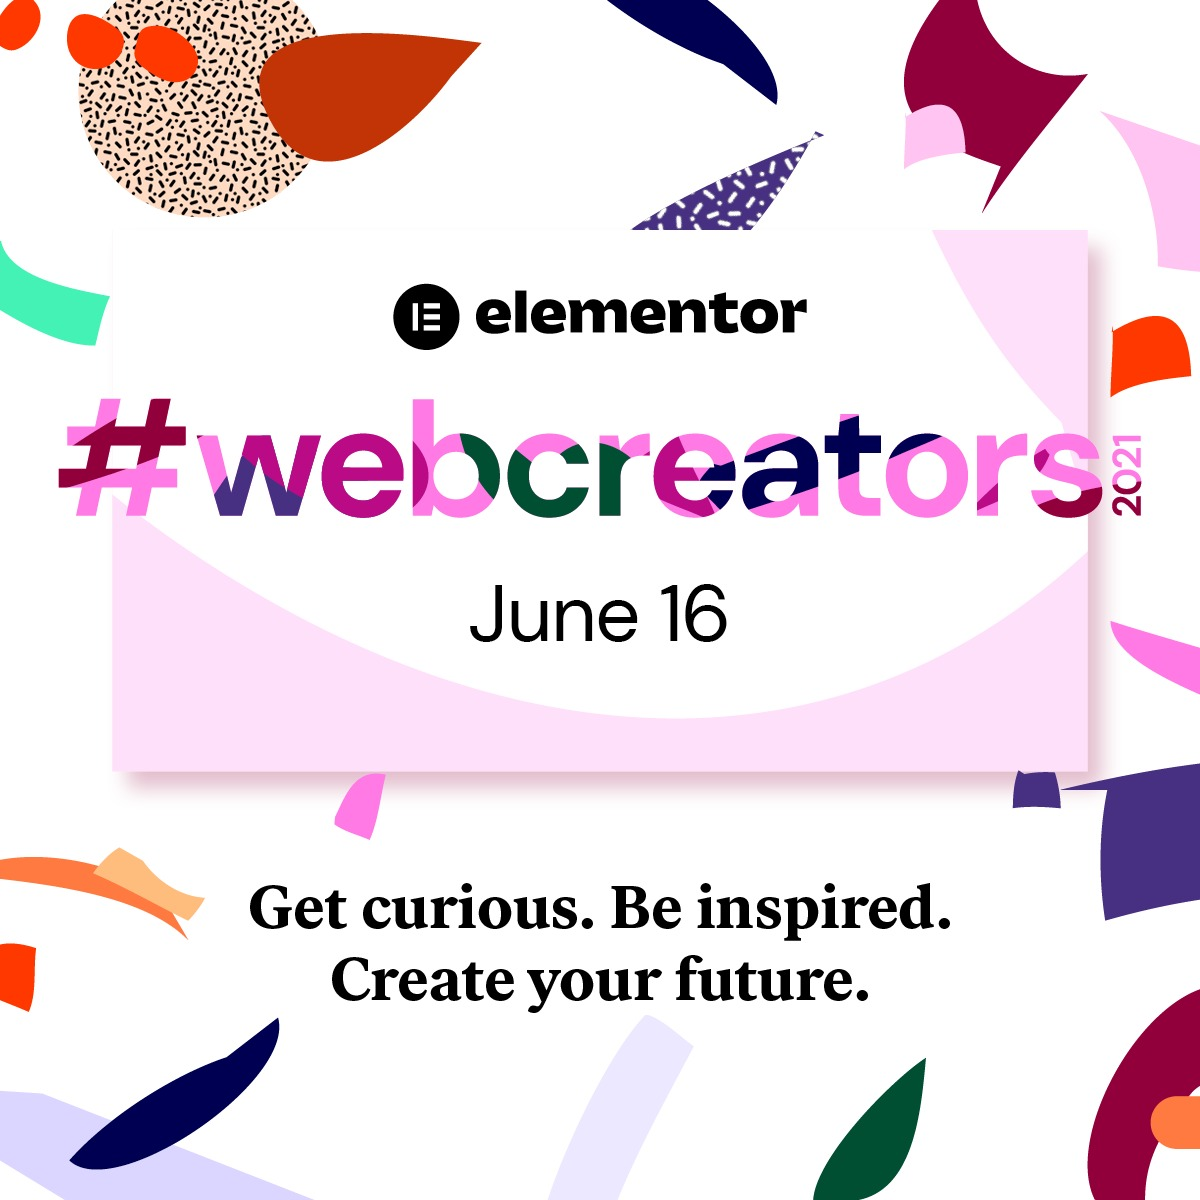 Elementor's annual virtual web creator conference to feature industry leaders Swan Sit, Seth Godin, and Gary Vaynerchuk